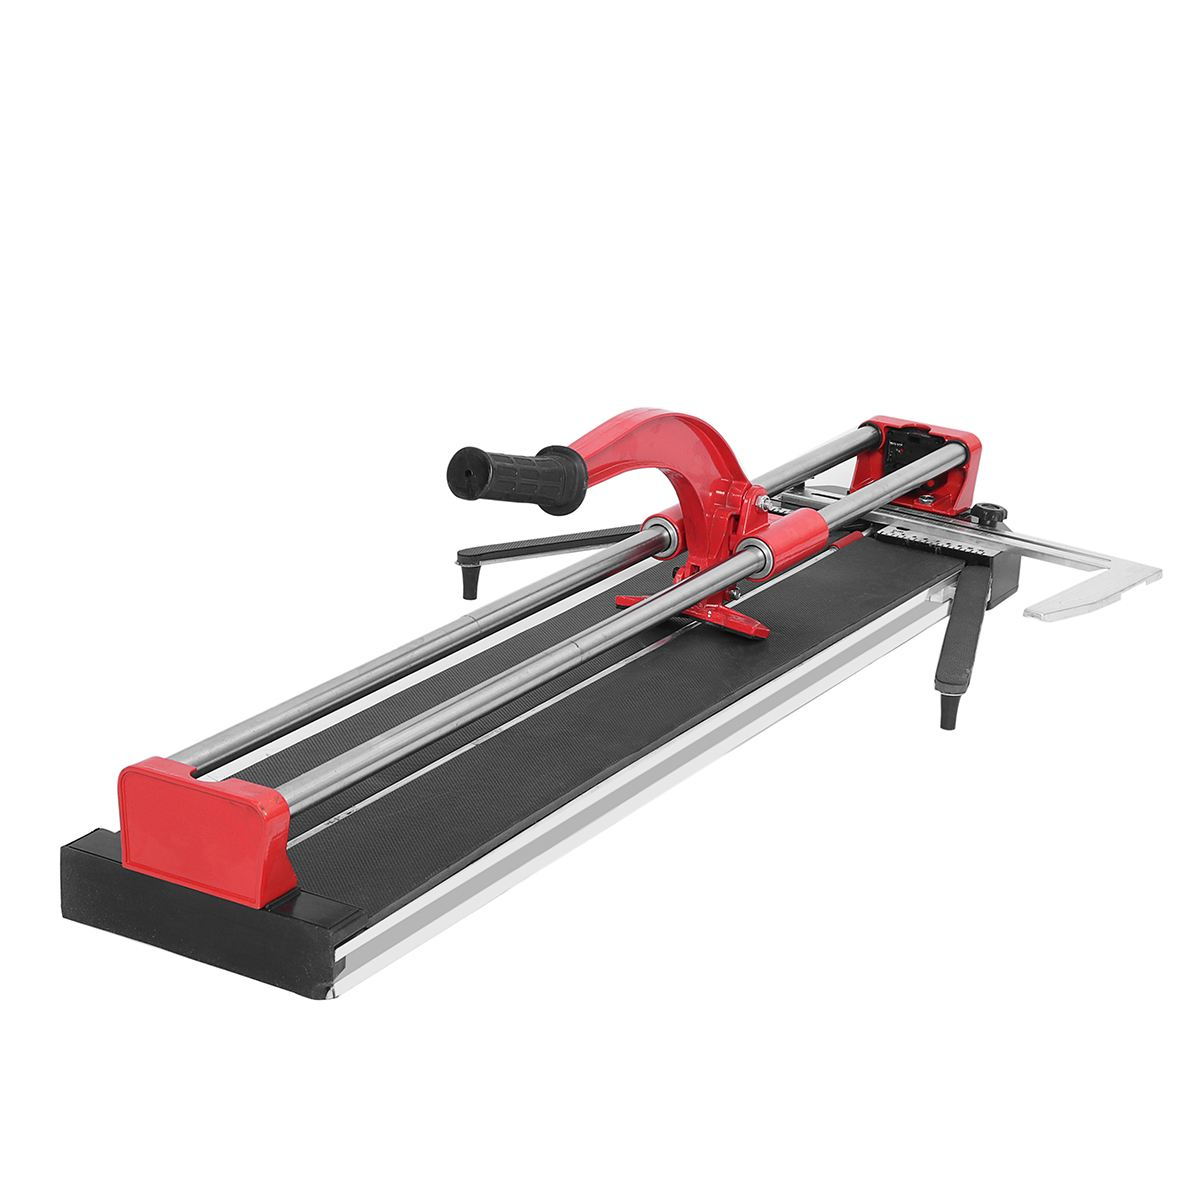 800MM New Multifunction High-precision Manual Tile Cutter Tile Push Knife Floor Wall Tile Cutting Machine Glass Tile Cutter